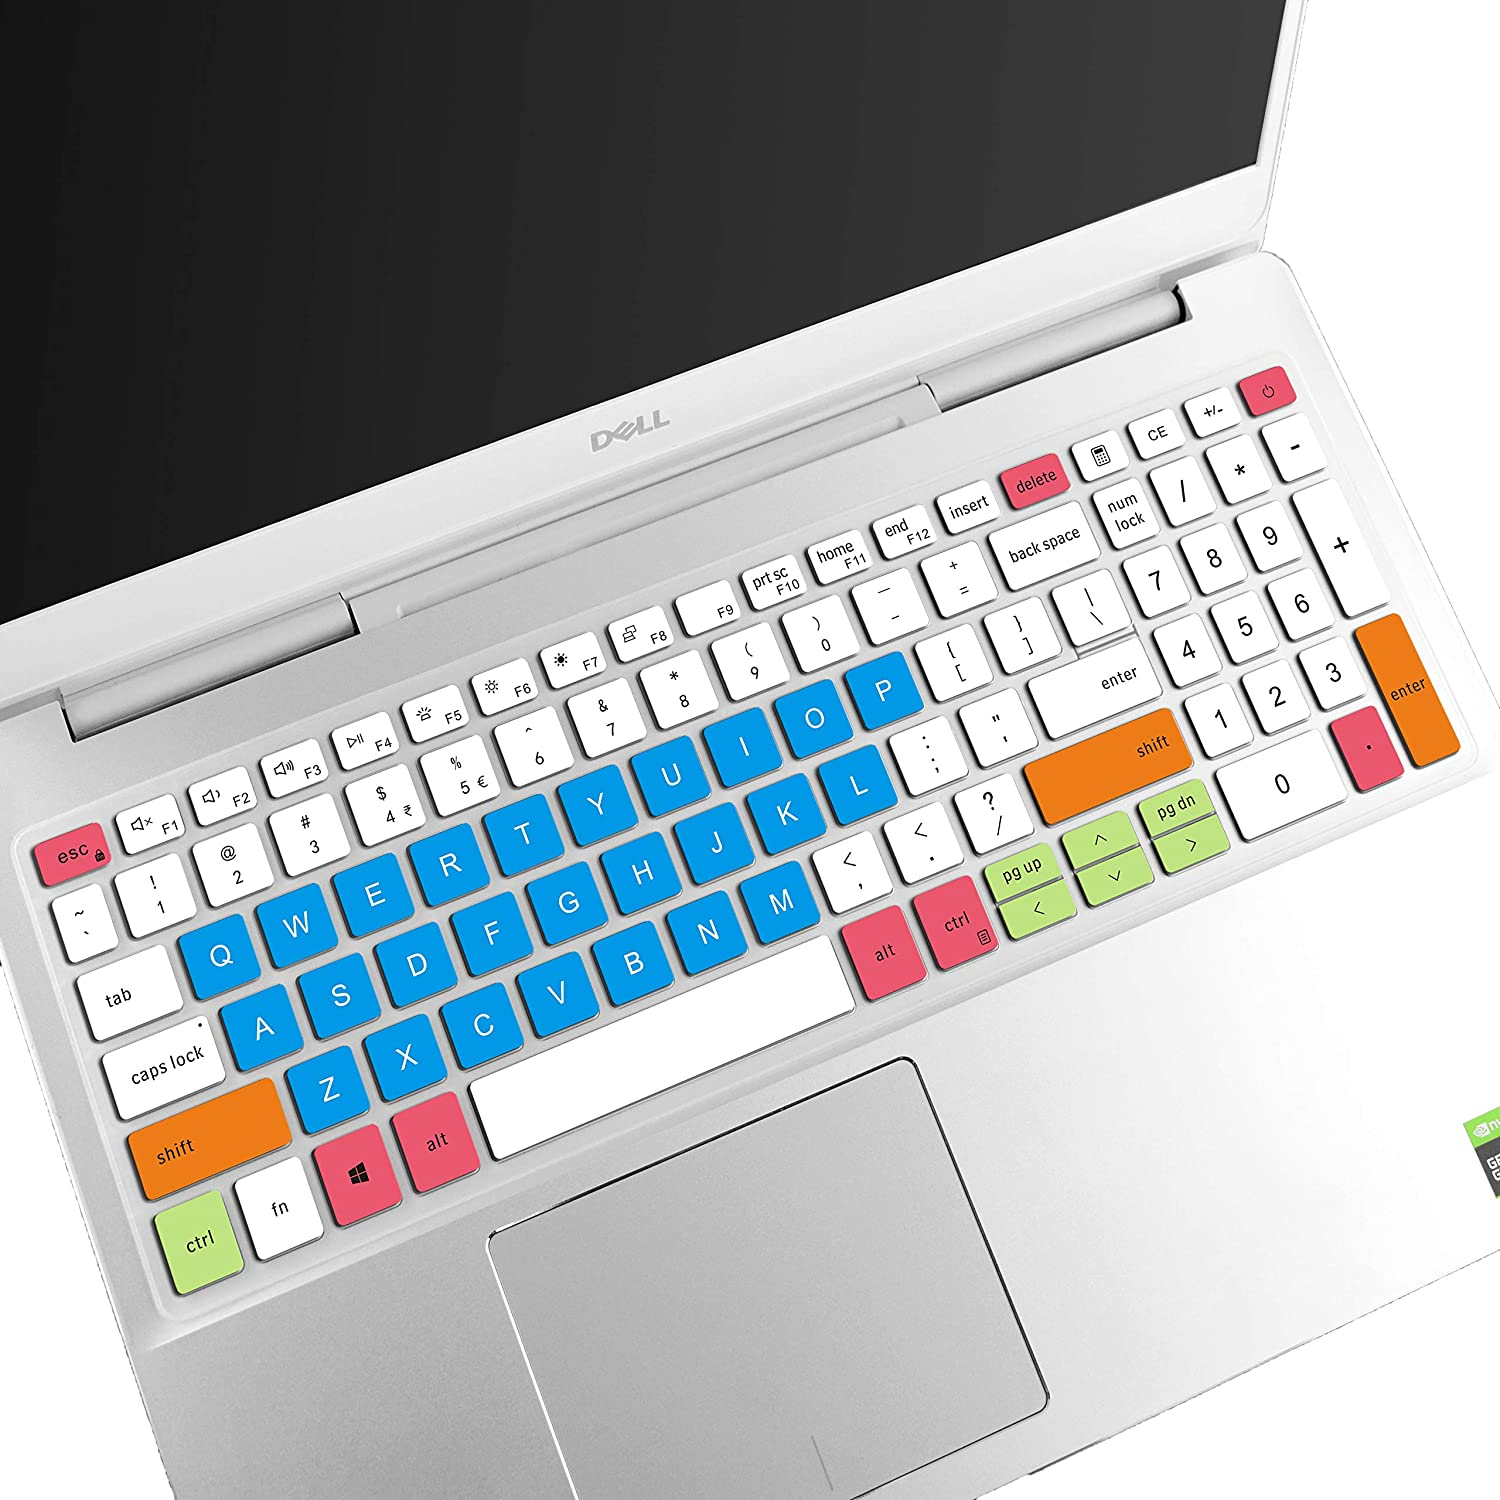 LEZE - Keyboard Cover Compatible with Dell Inspiron 15 7000 7590 7591 7500 7501, Inspiron 15 5000 5501 5508 5584 5590 5593 5598, Vostro 15 7590 7591 5590 7500 Laptop US Layout - White Blue